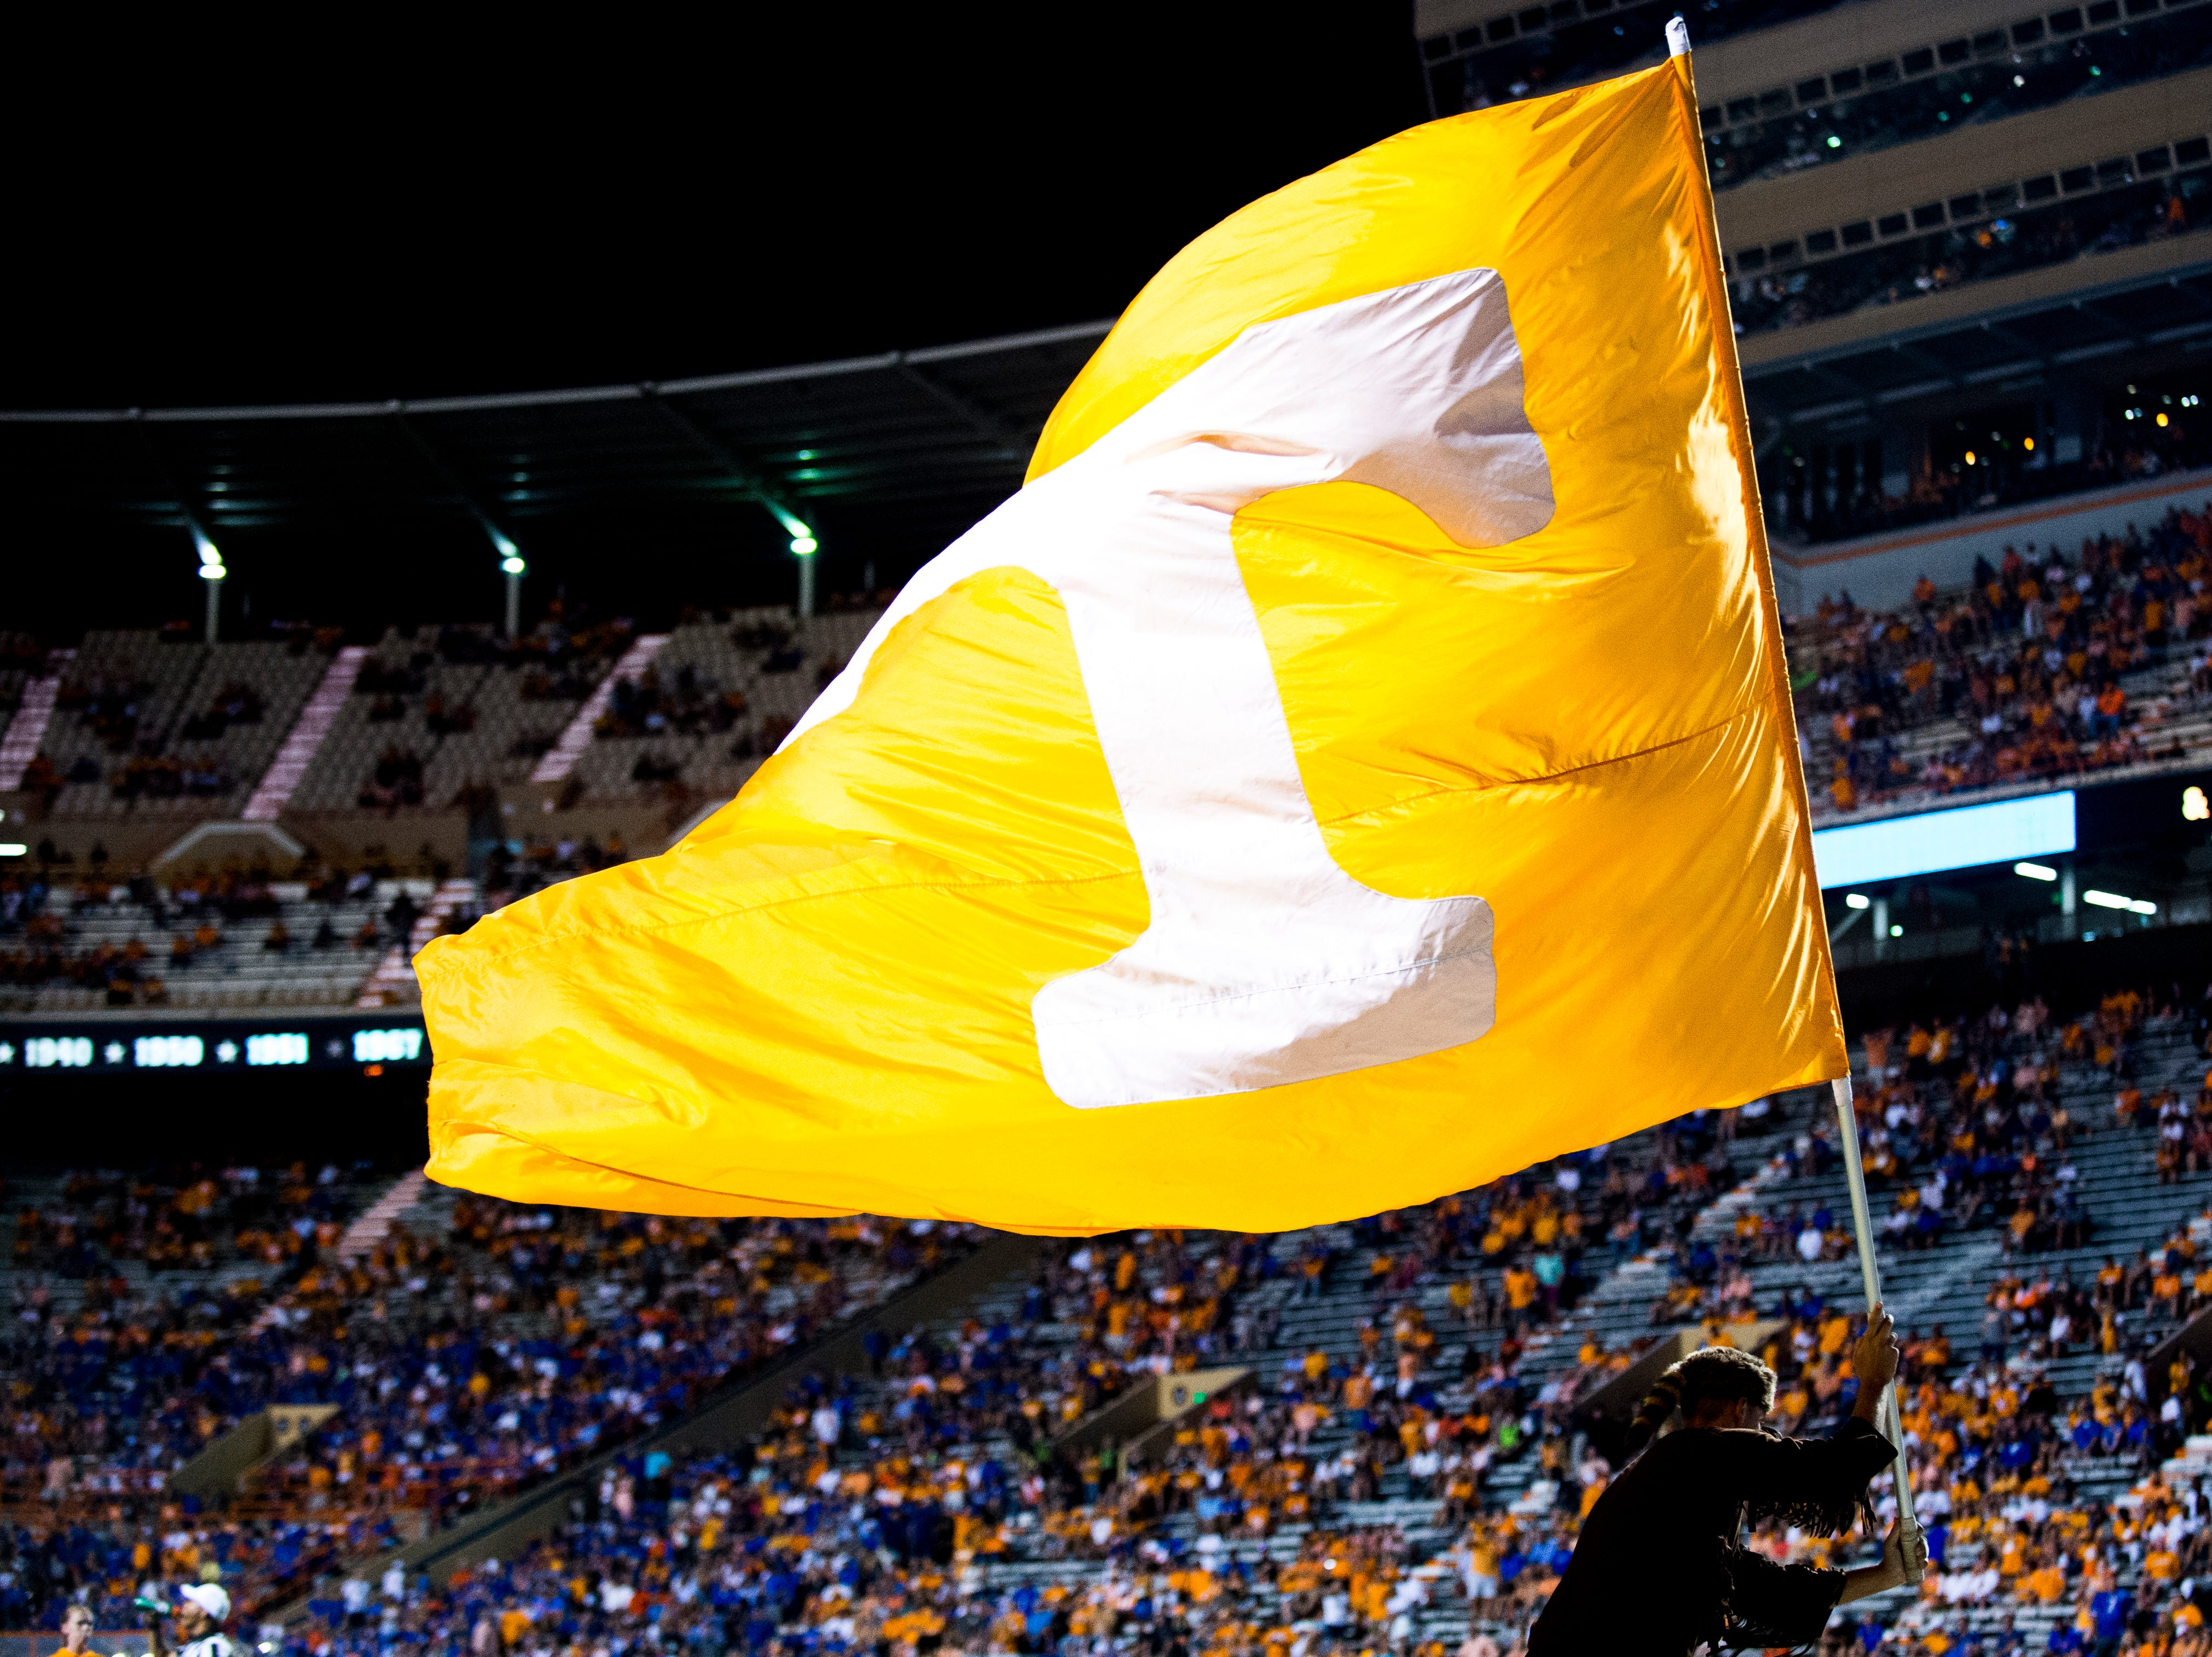 The Volunteer runs off the field with the Tennessee flag during a game between Tennessee and Florida at Neyland Stadium in Knoxville, Tennessee on Saturday, September 22, 2018.